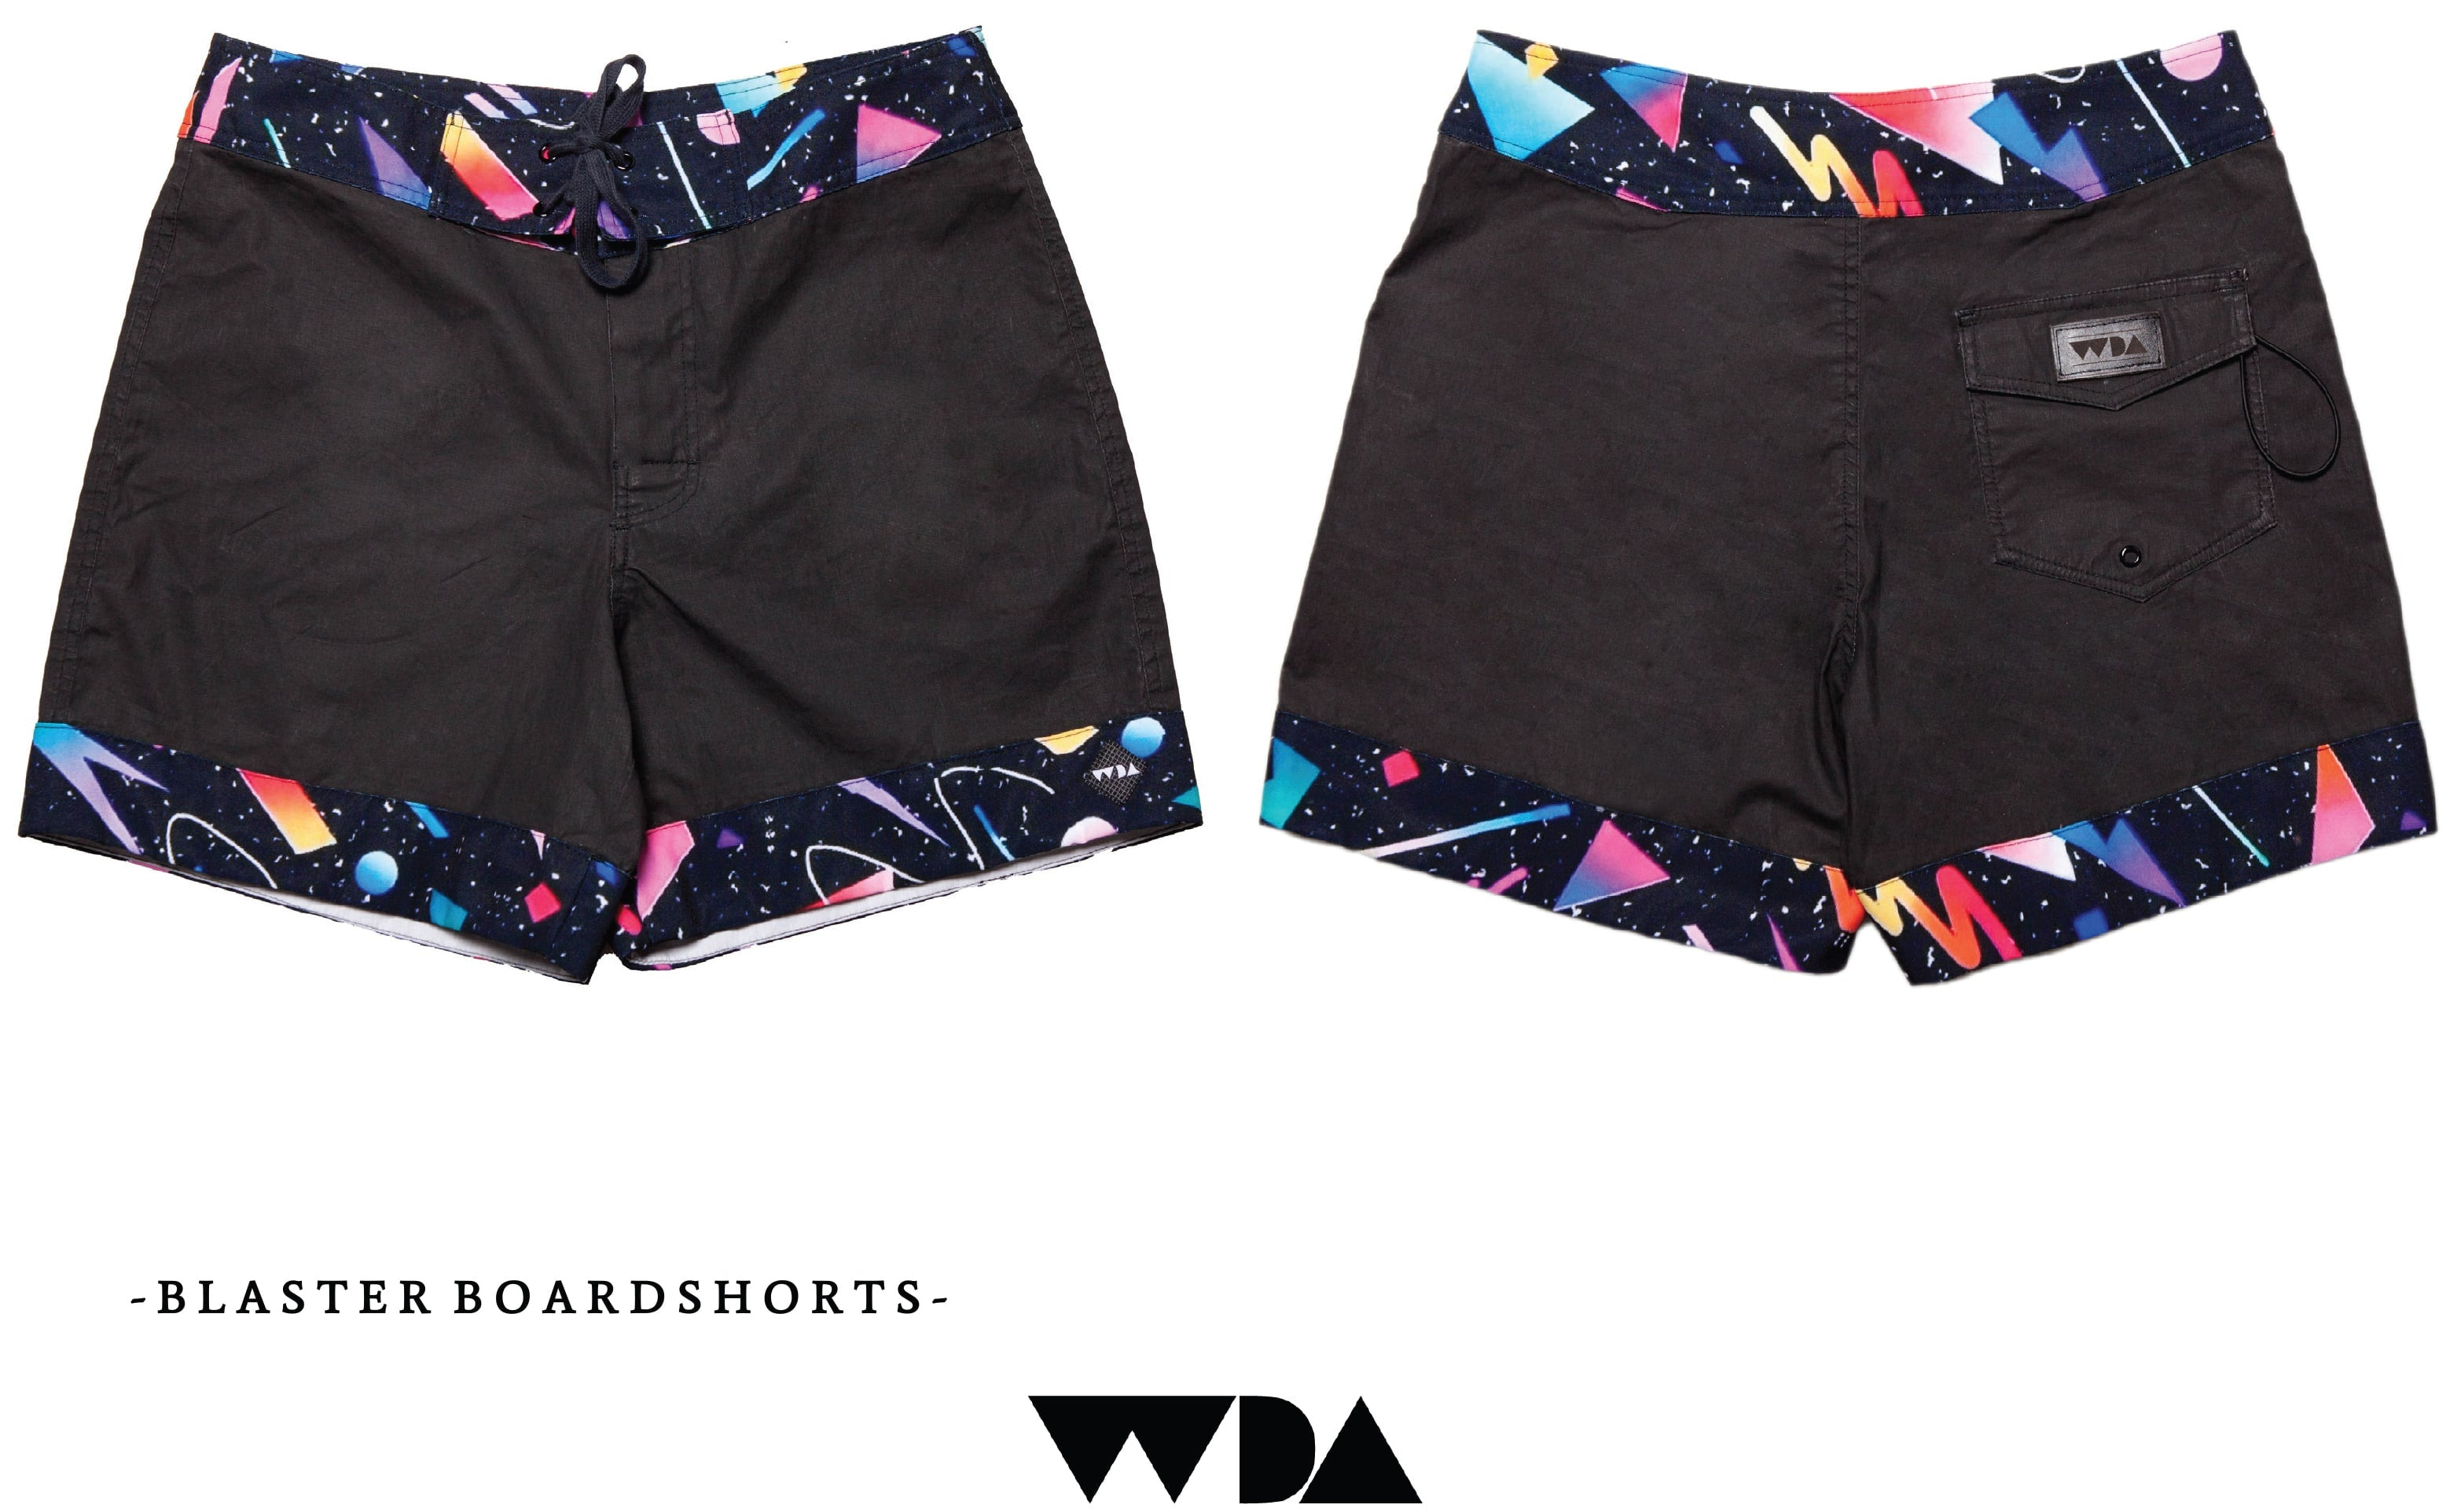 WDA, WE DREAM ALONE, CLOTHING, MAN, BOARDSHORTS, BLASTER, 80S, BLACK